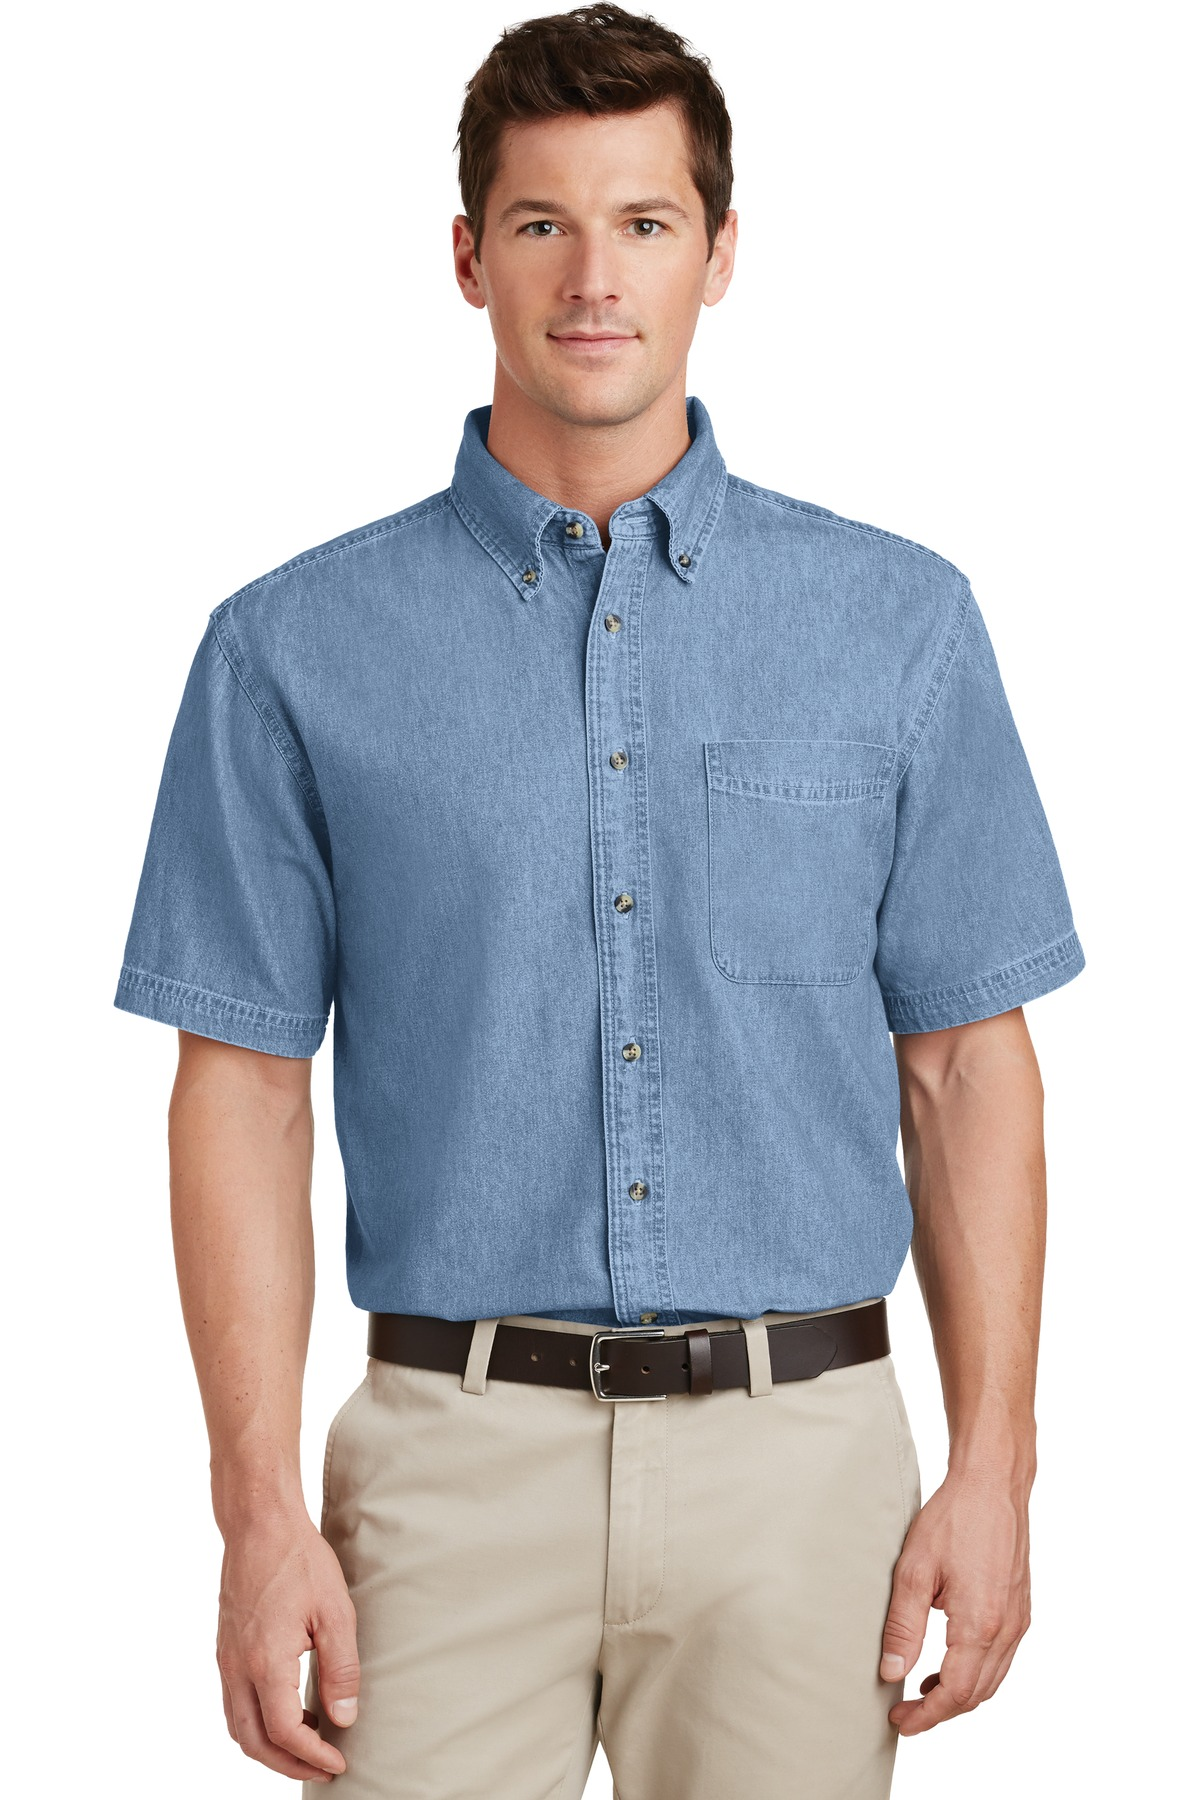 Port and Company - Short Sleeve Value Denim Shirt. SP11